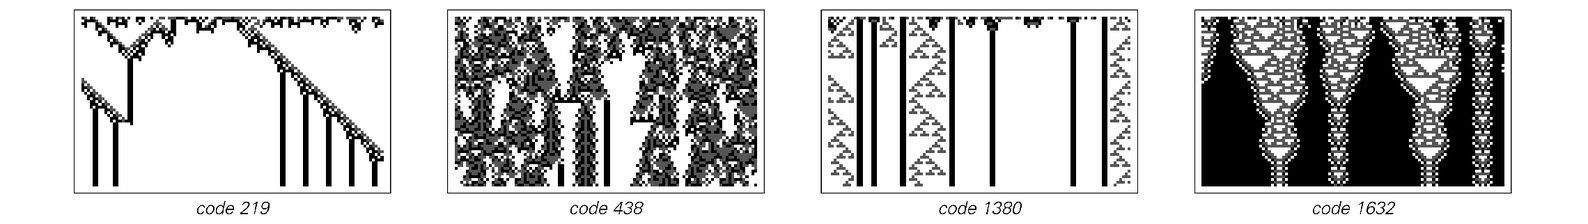 Borderline cellular automata